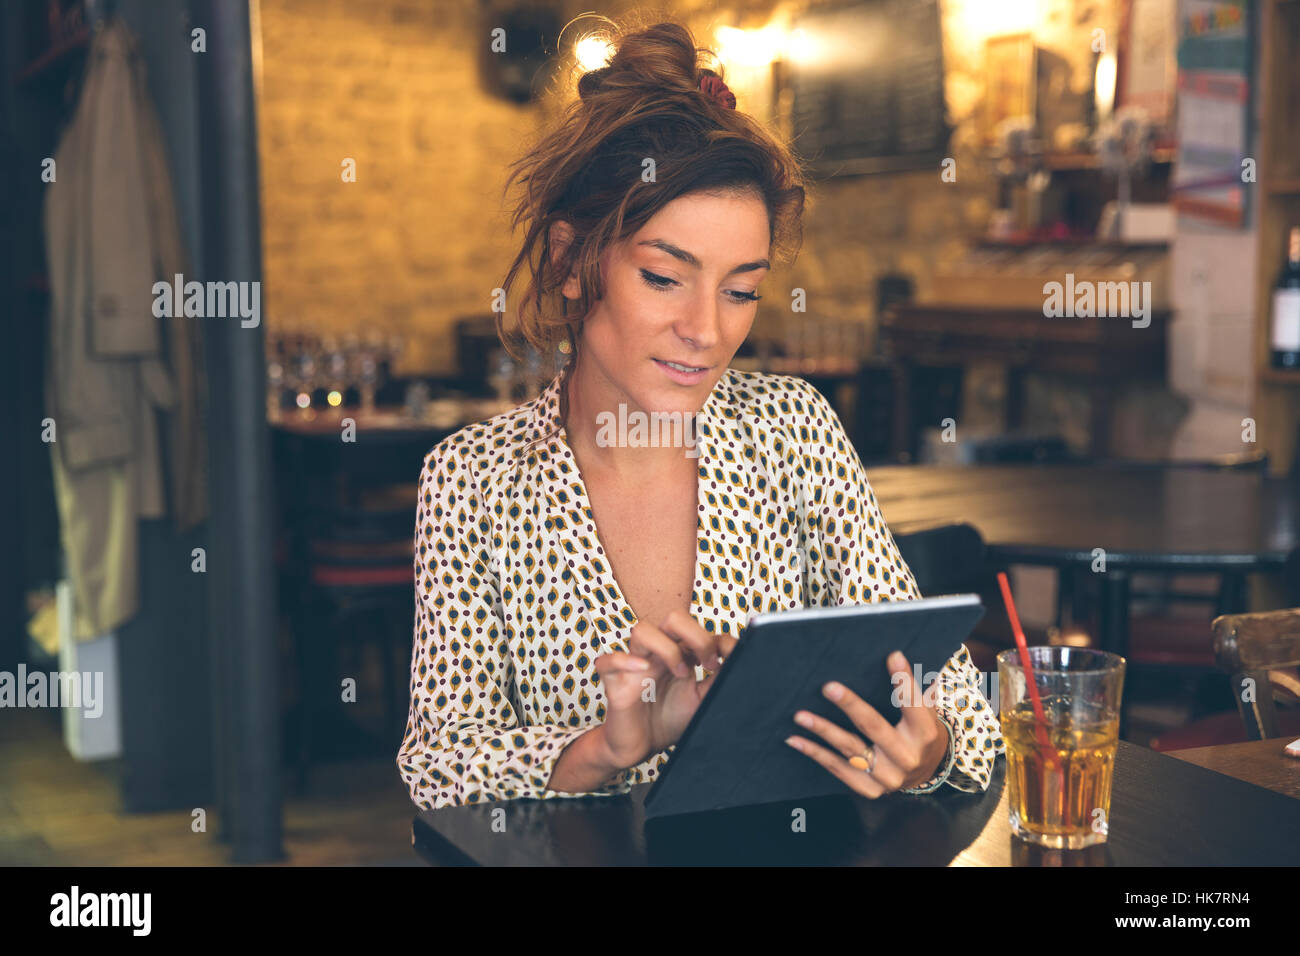 Woman using a Tablet pc in coffee shop Photo Stock